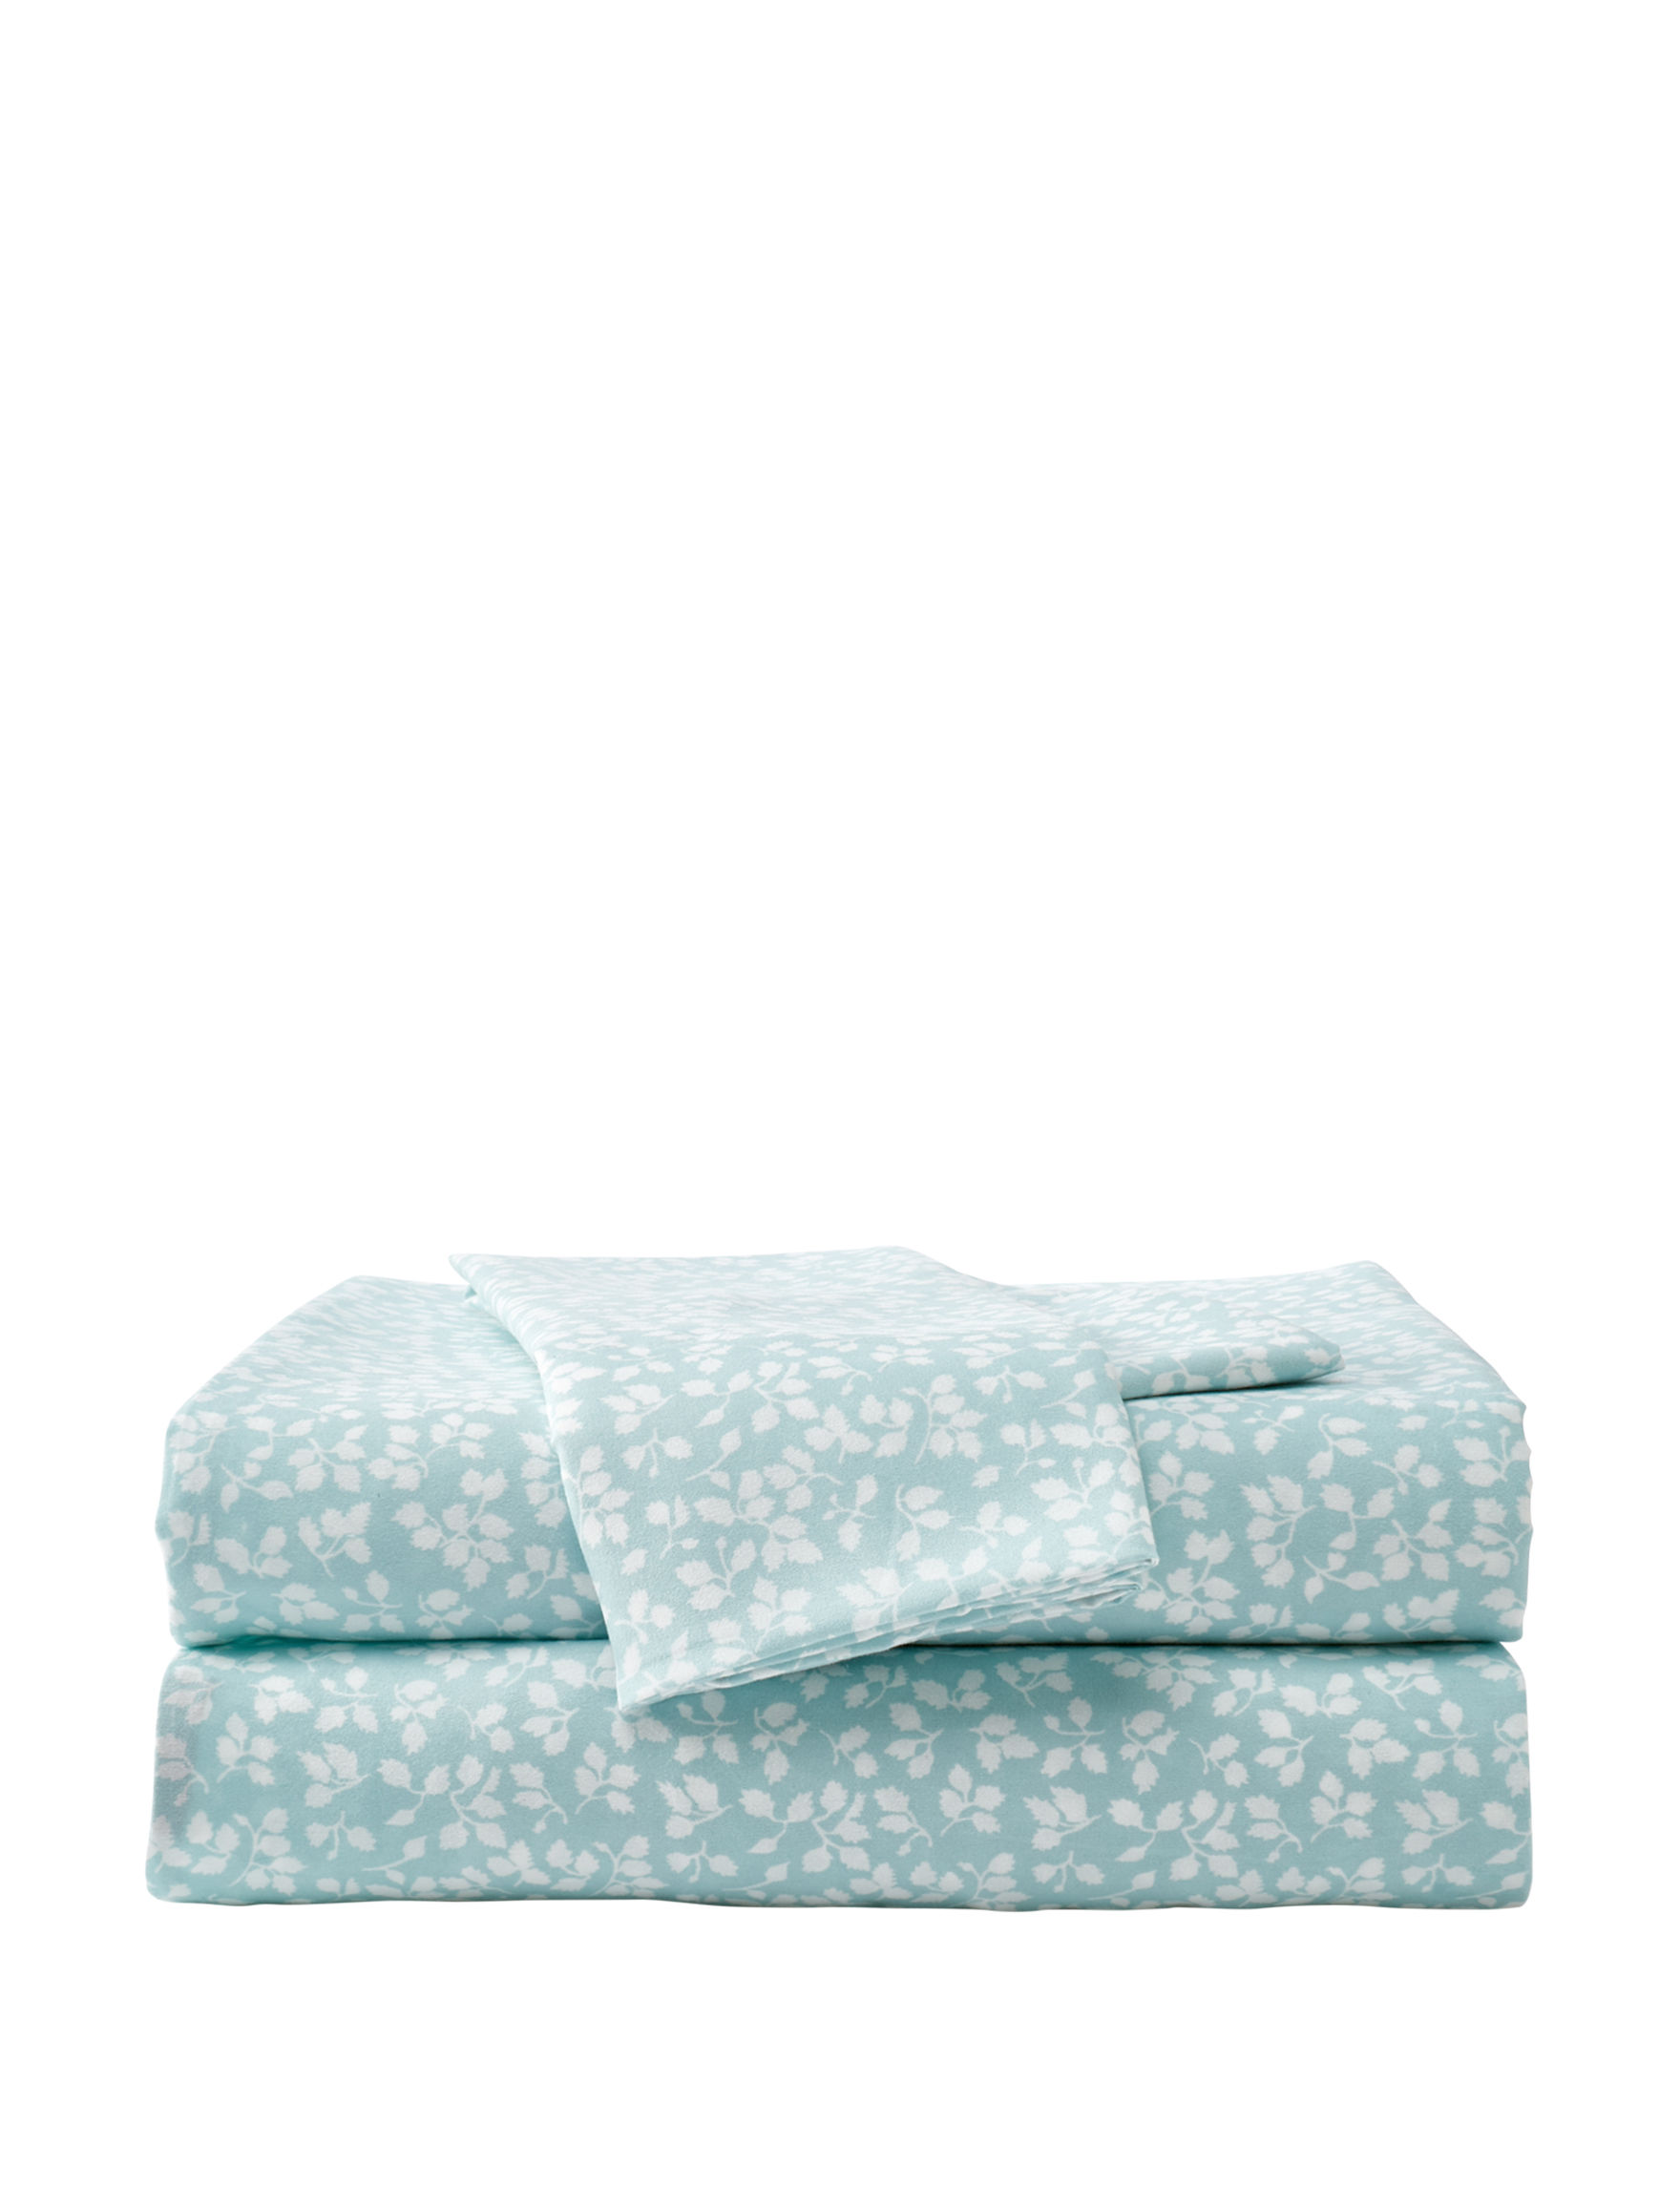 Great Hotels Collection Light Green Sheets & Pillowcases